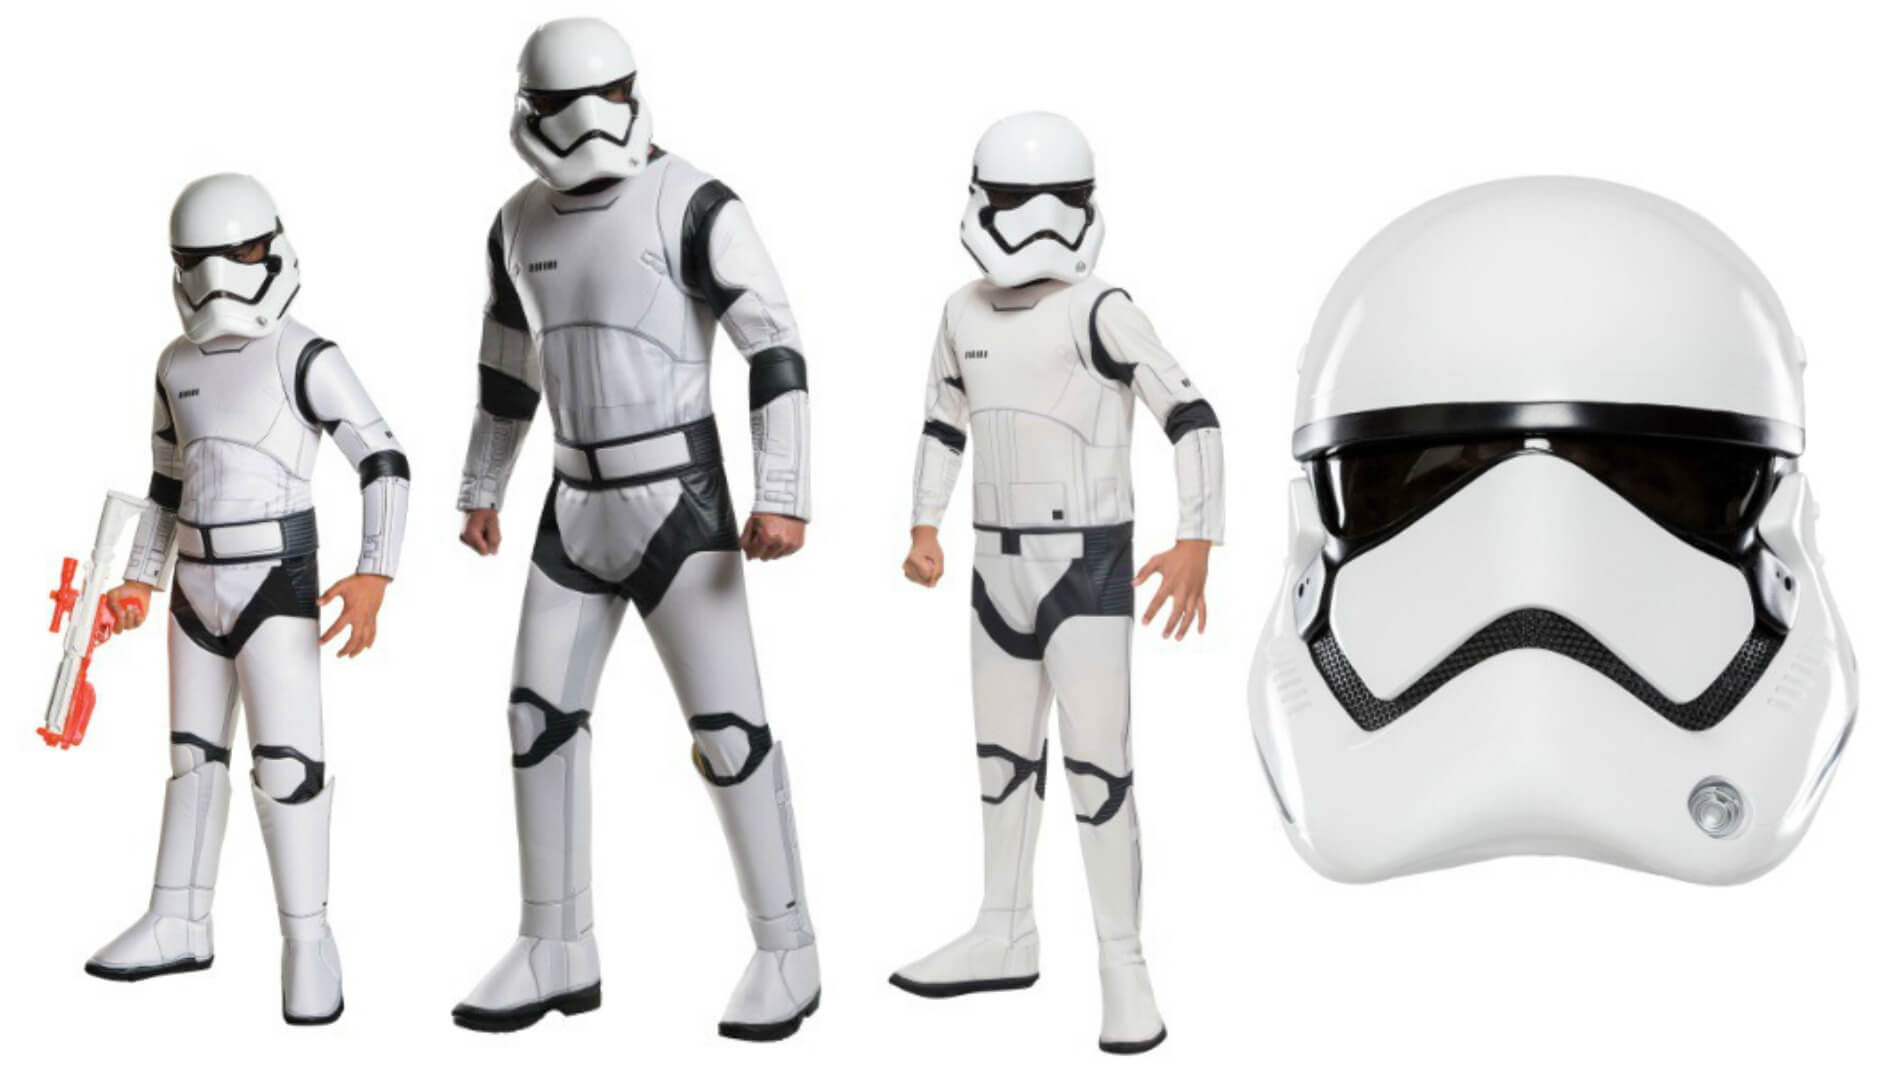 The Force Awakens Stormtrooper Costumes